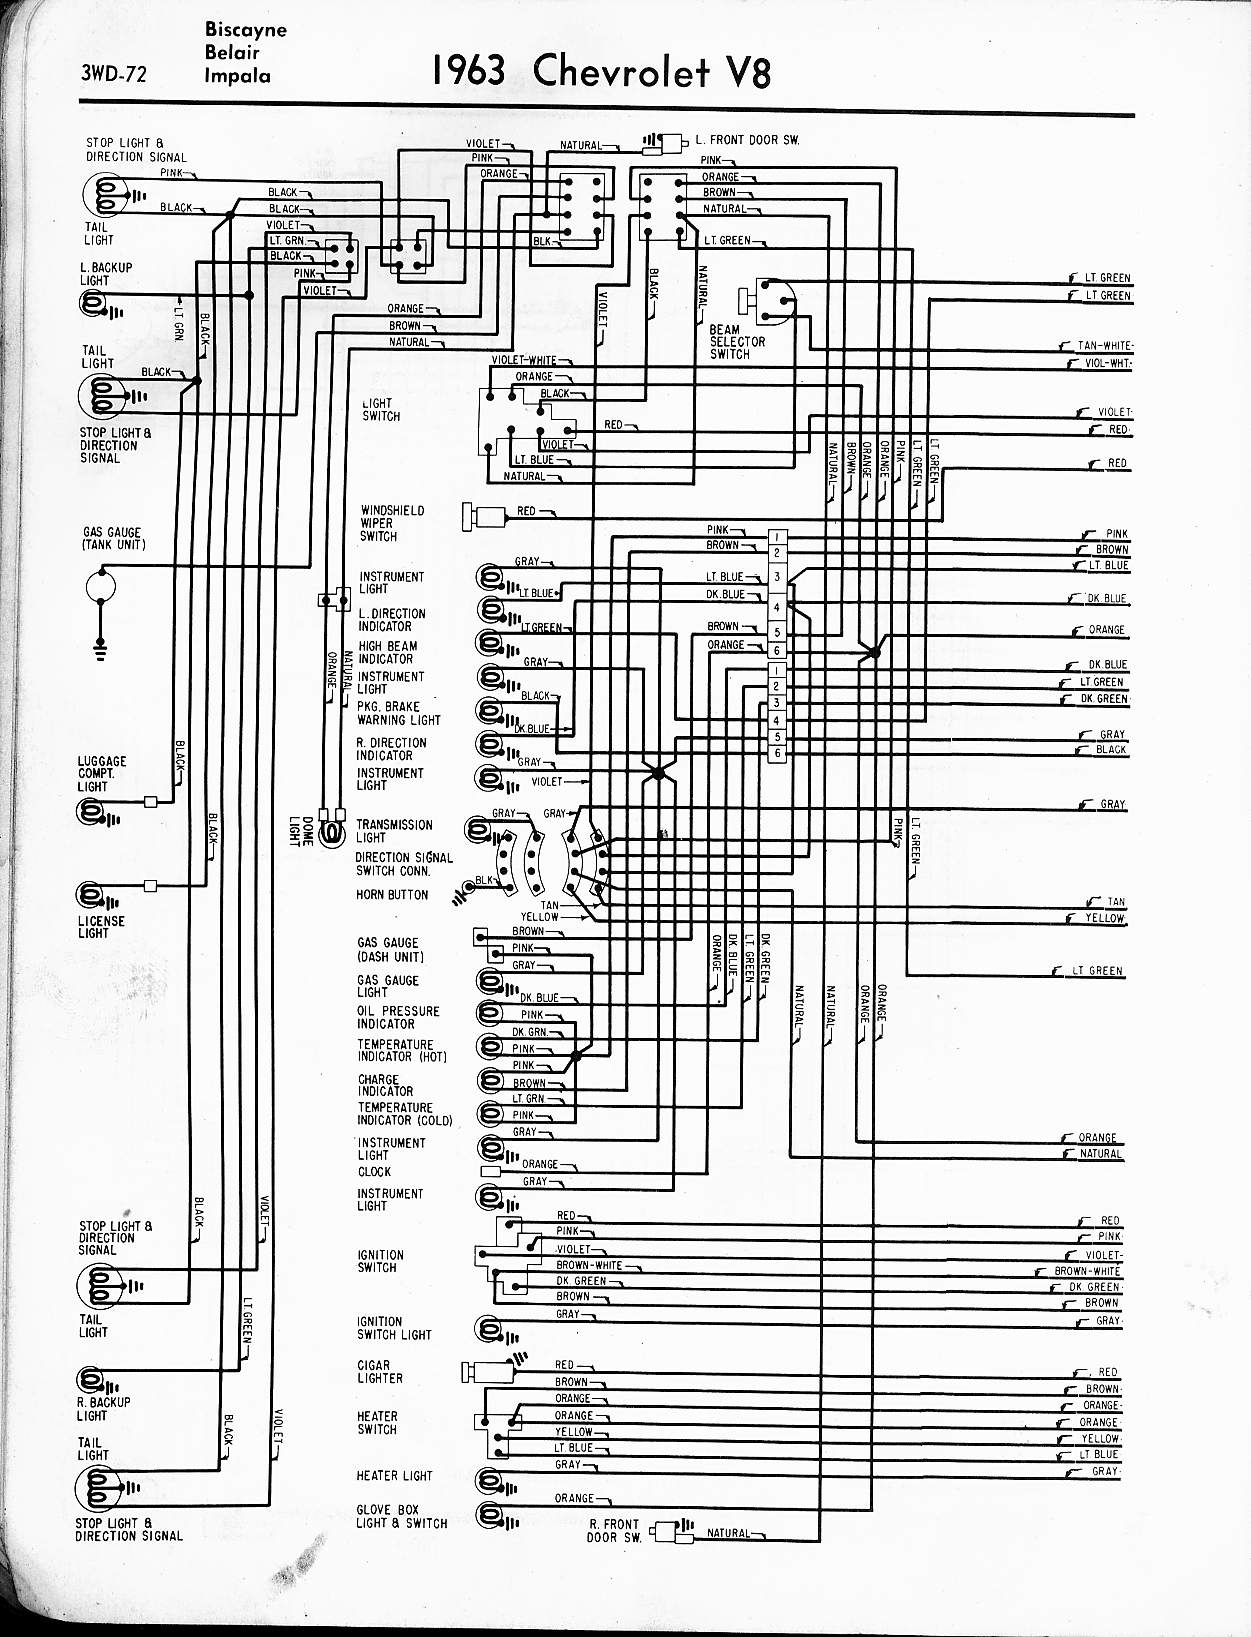 Wiring Diagrams Of 1961 Chevrolet 6 Biscayne Belair And